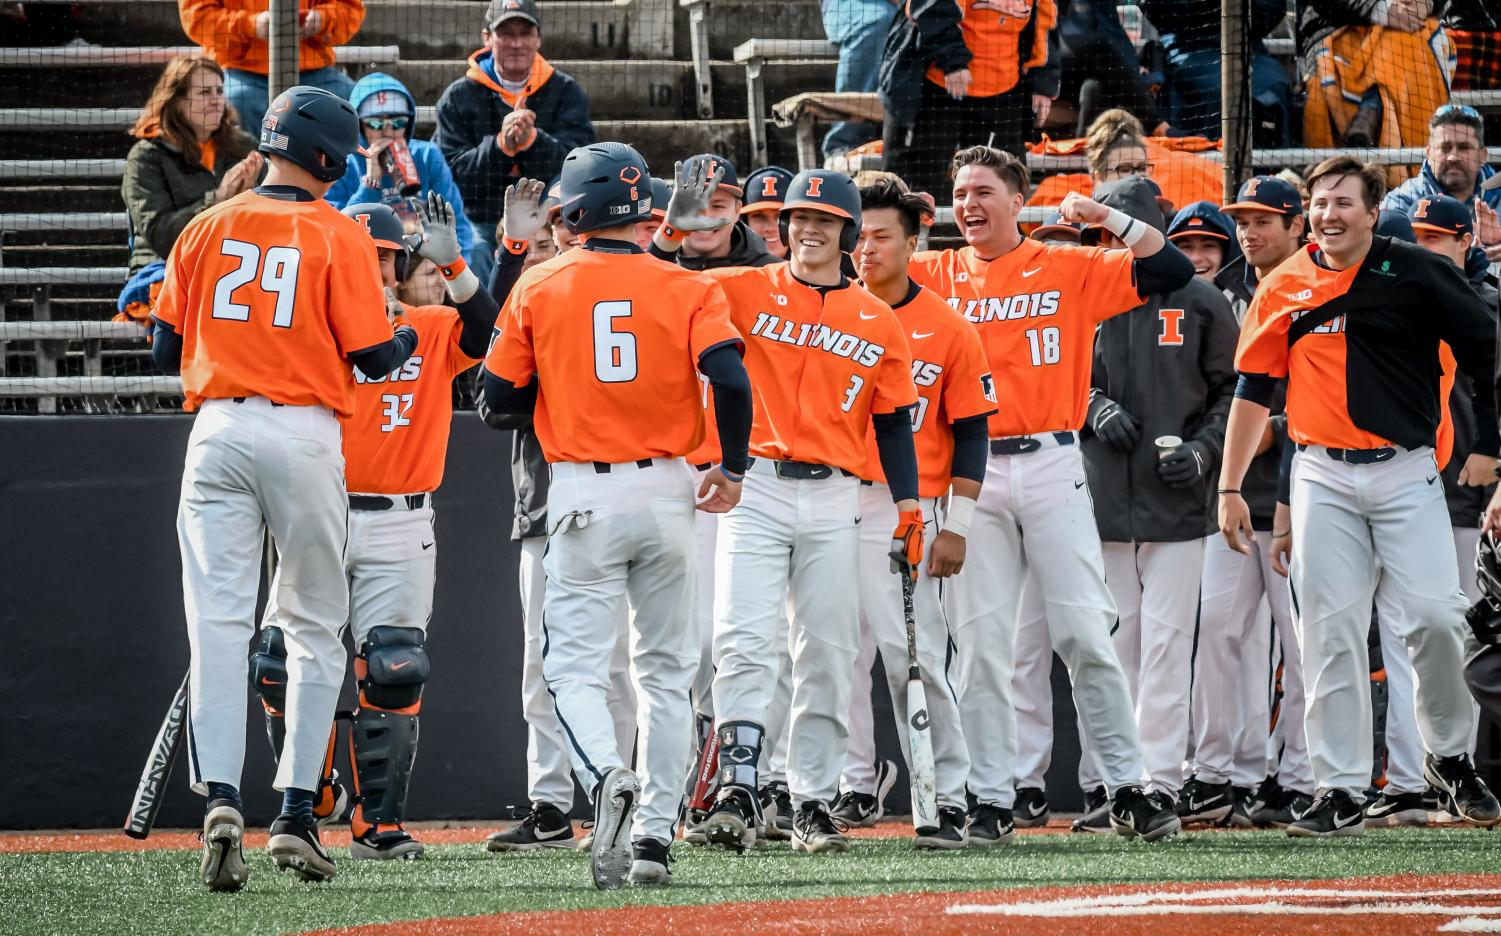 The Illini celebrate their victory over Illinois State over the weekend. They won the series 3-0 over Illinois State.